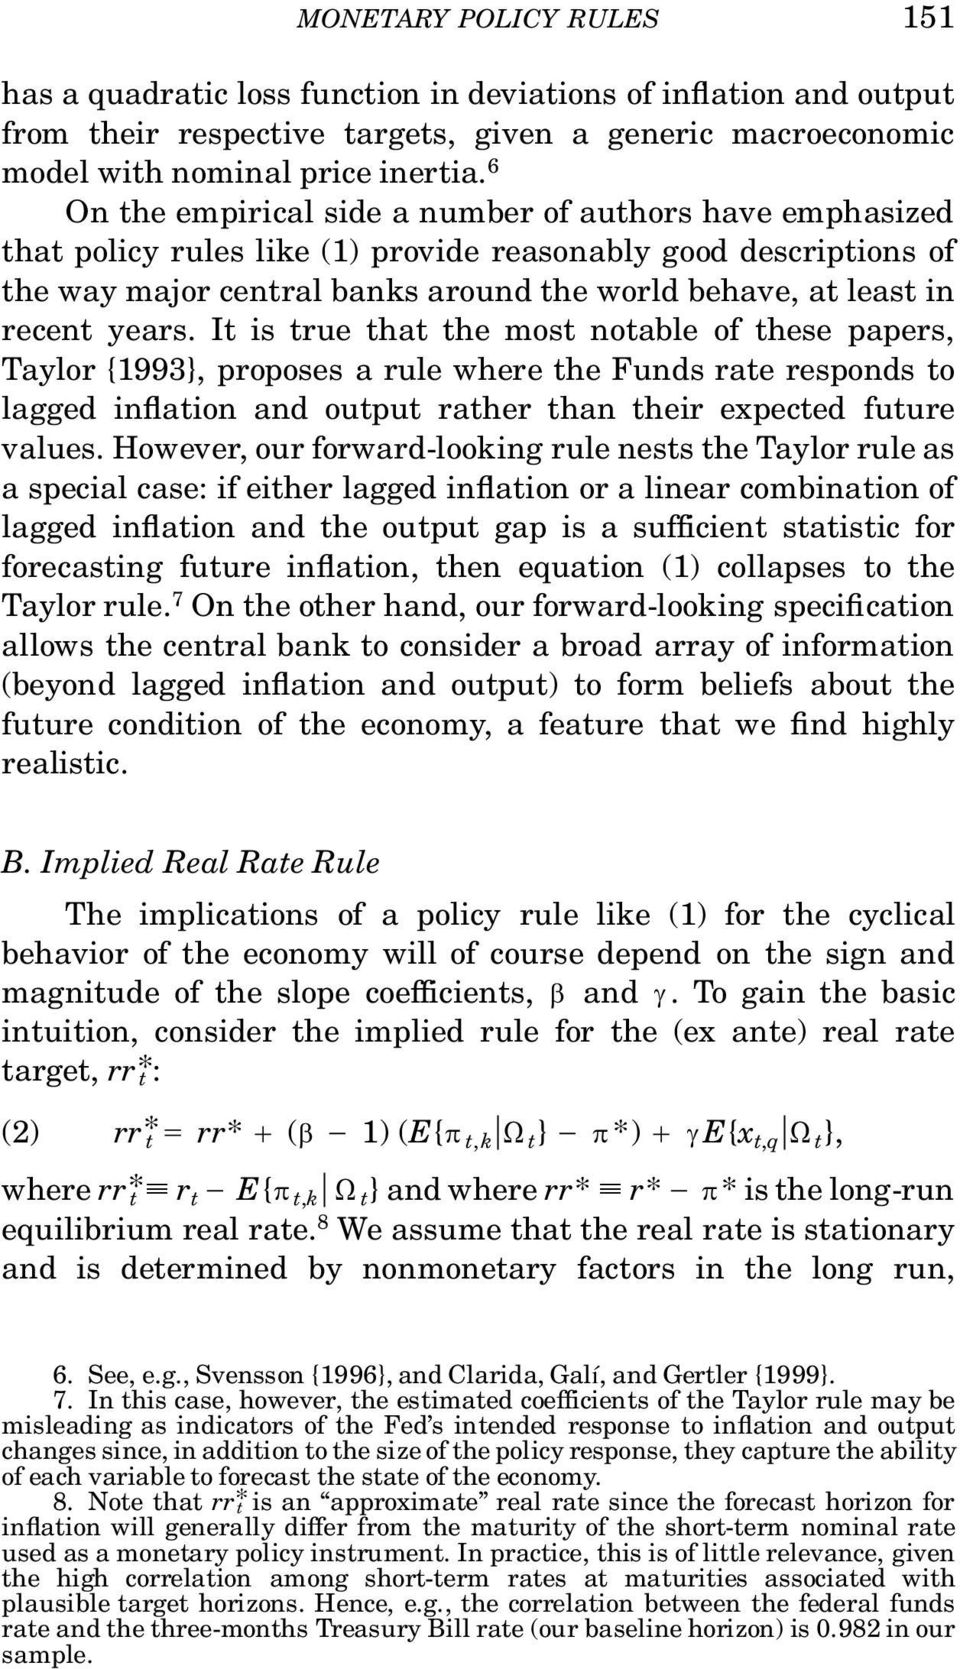 years. It is true that the most notable of these papers, Taylor {1993}, proposes a rule where the Funds rate responds to lagged in ation and output rather than their expected future values.